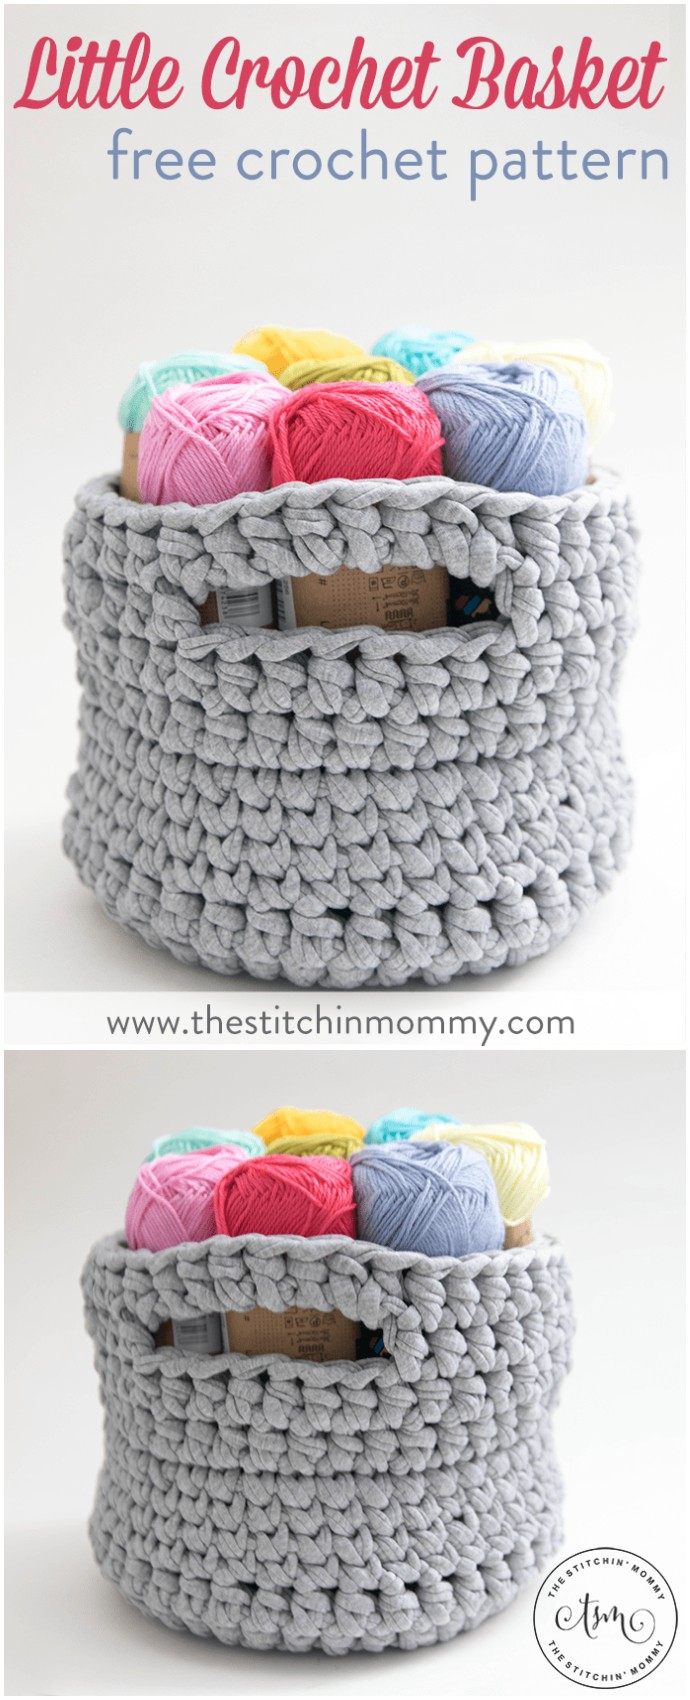 Little Crochet Basket Free Crochet Pattern